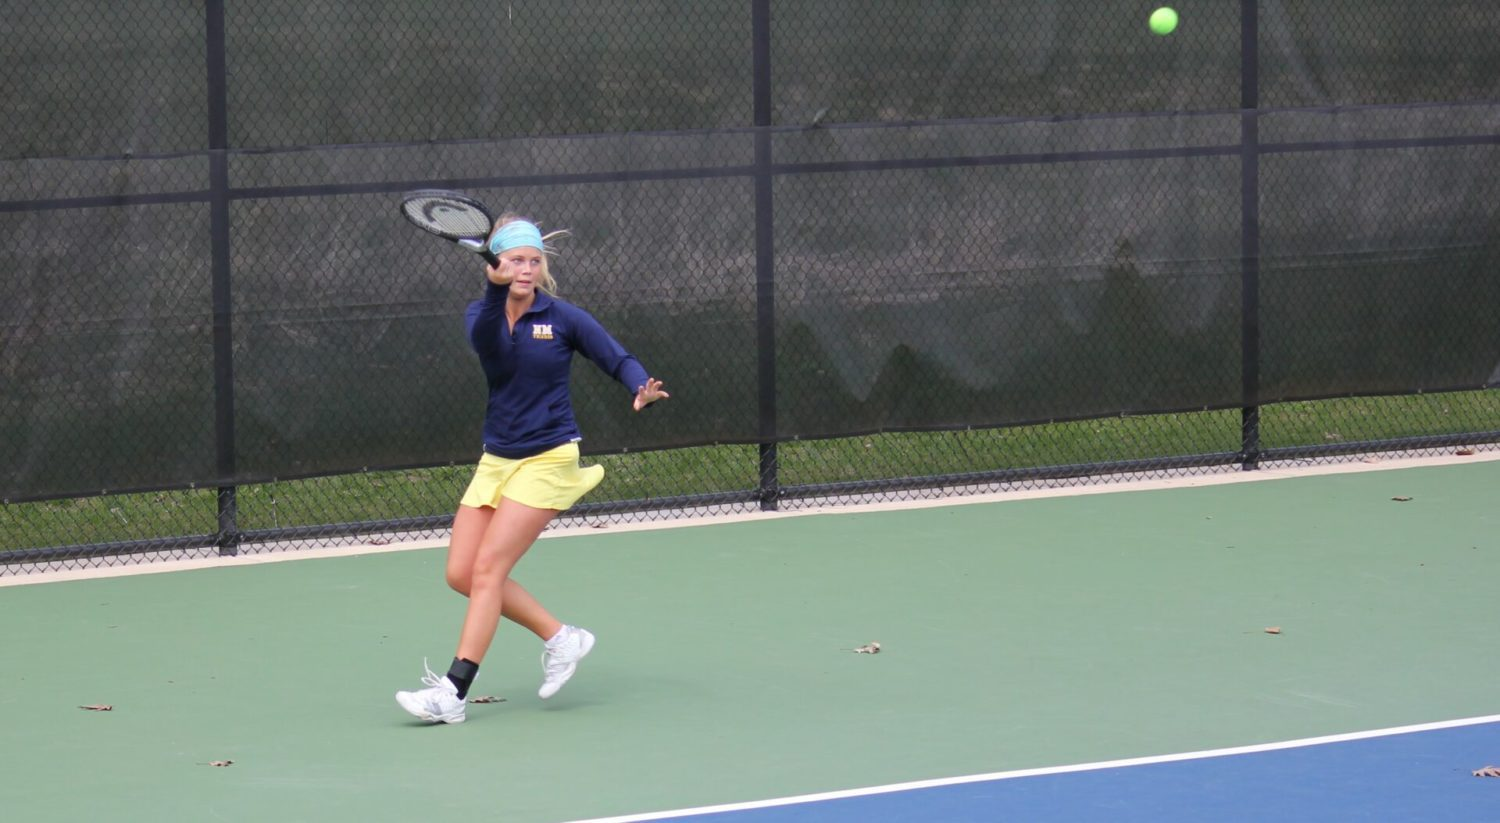 North Muskegon wins second straight girls city tennis title with one great senior, many underclassmen